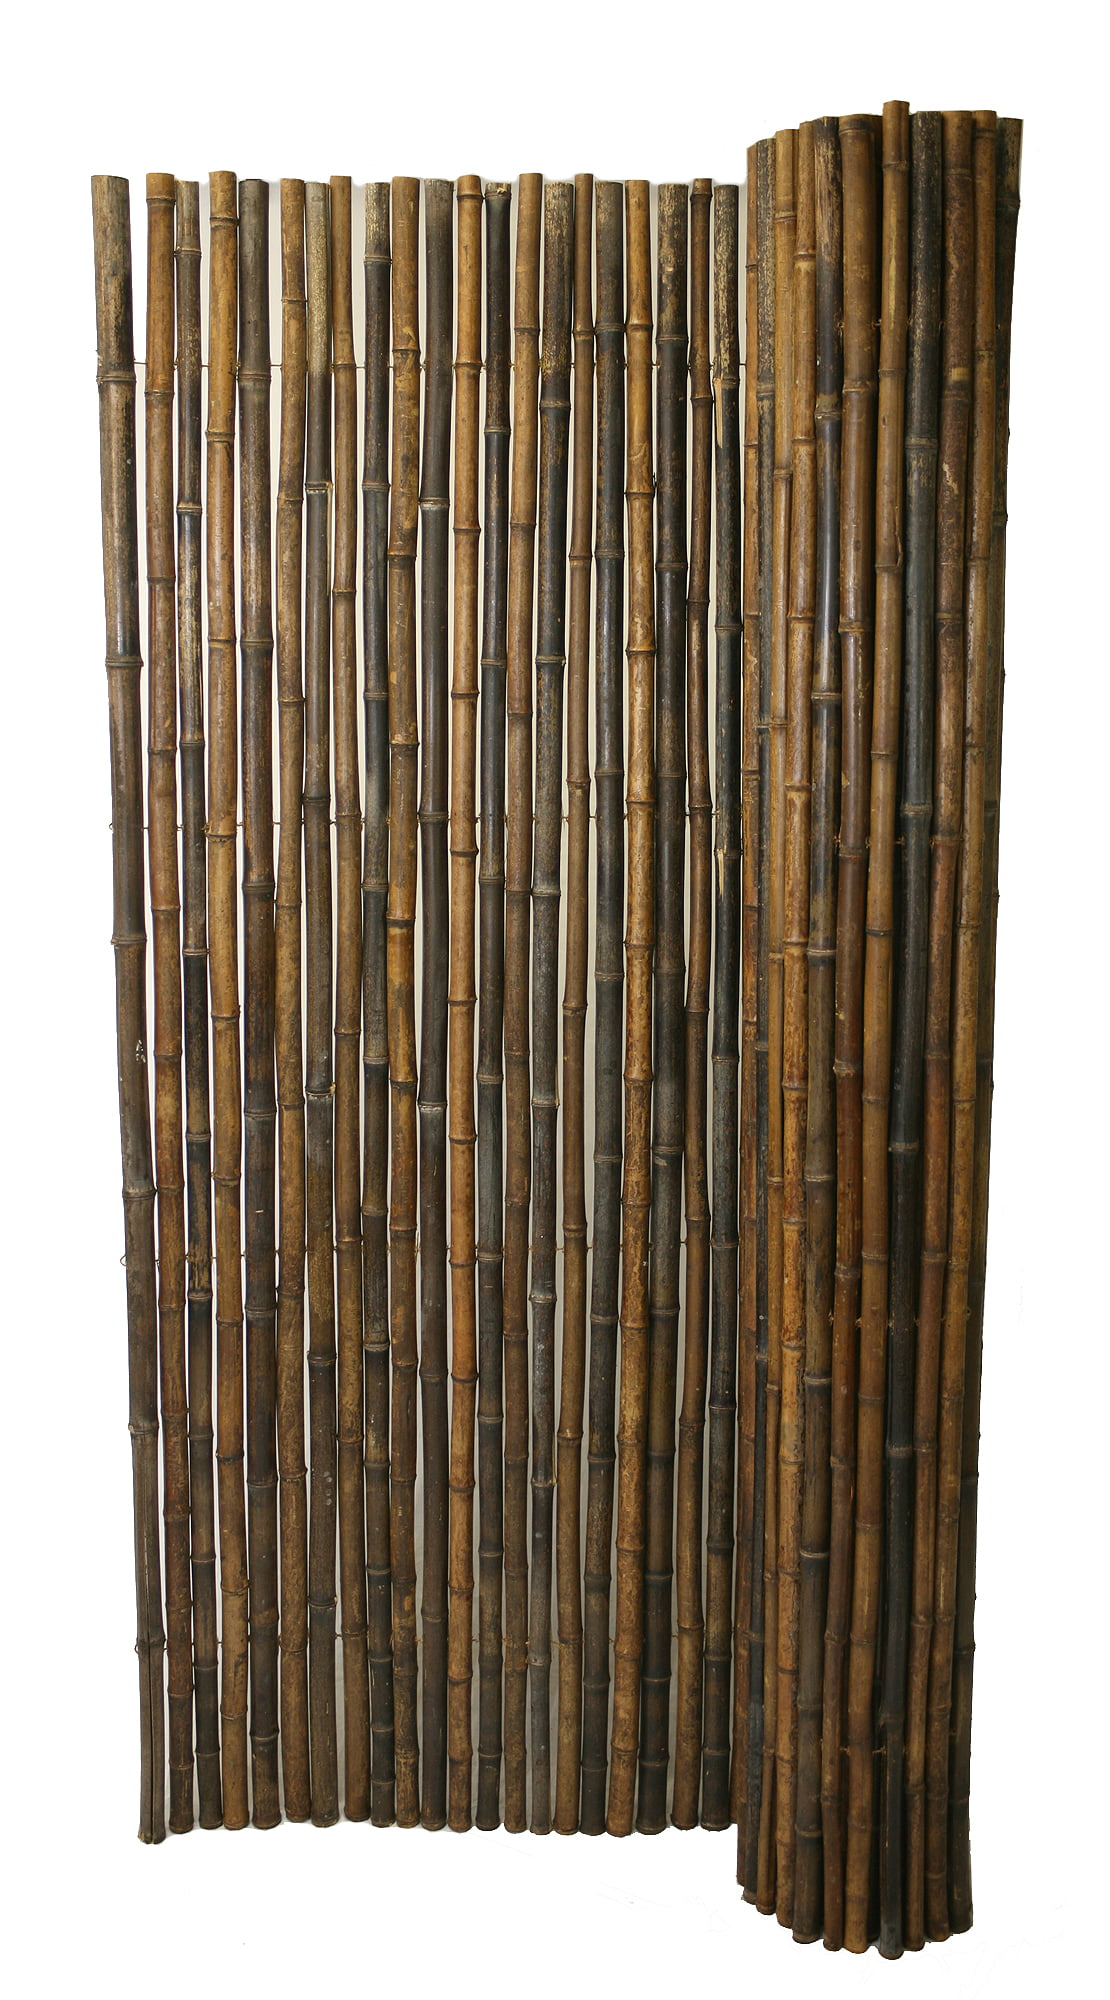 Backyard X-Scapes Bamboo Fencing, Natural Black by Generic